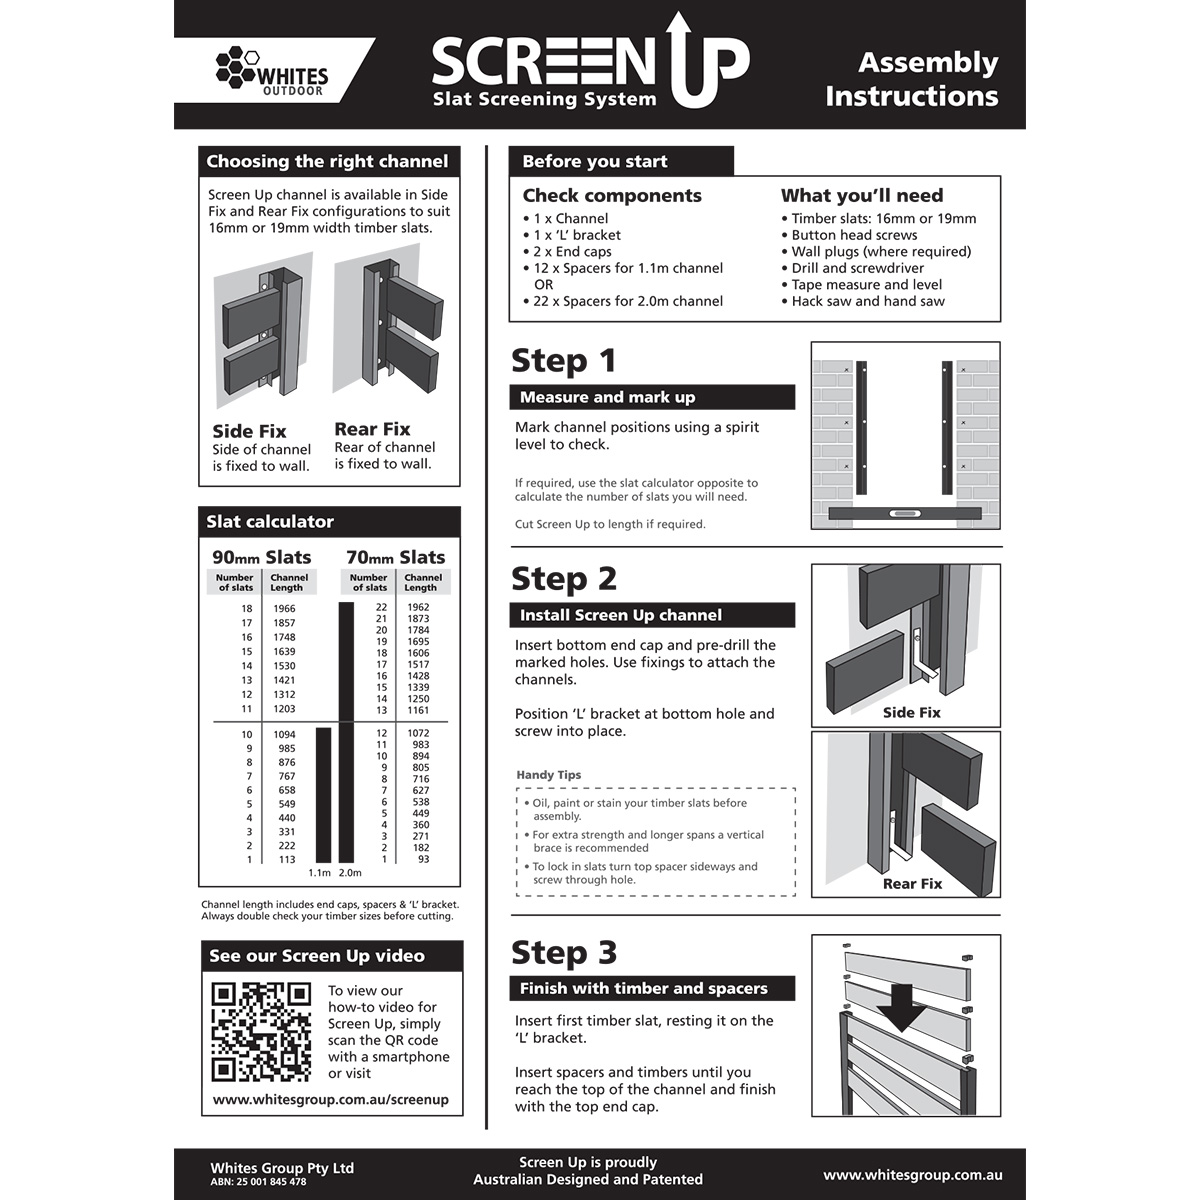 Screen Up wall mount instructions